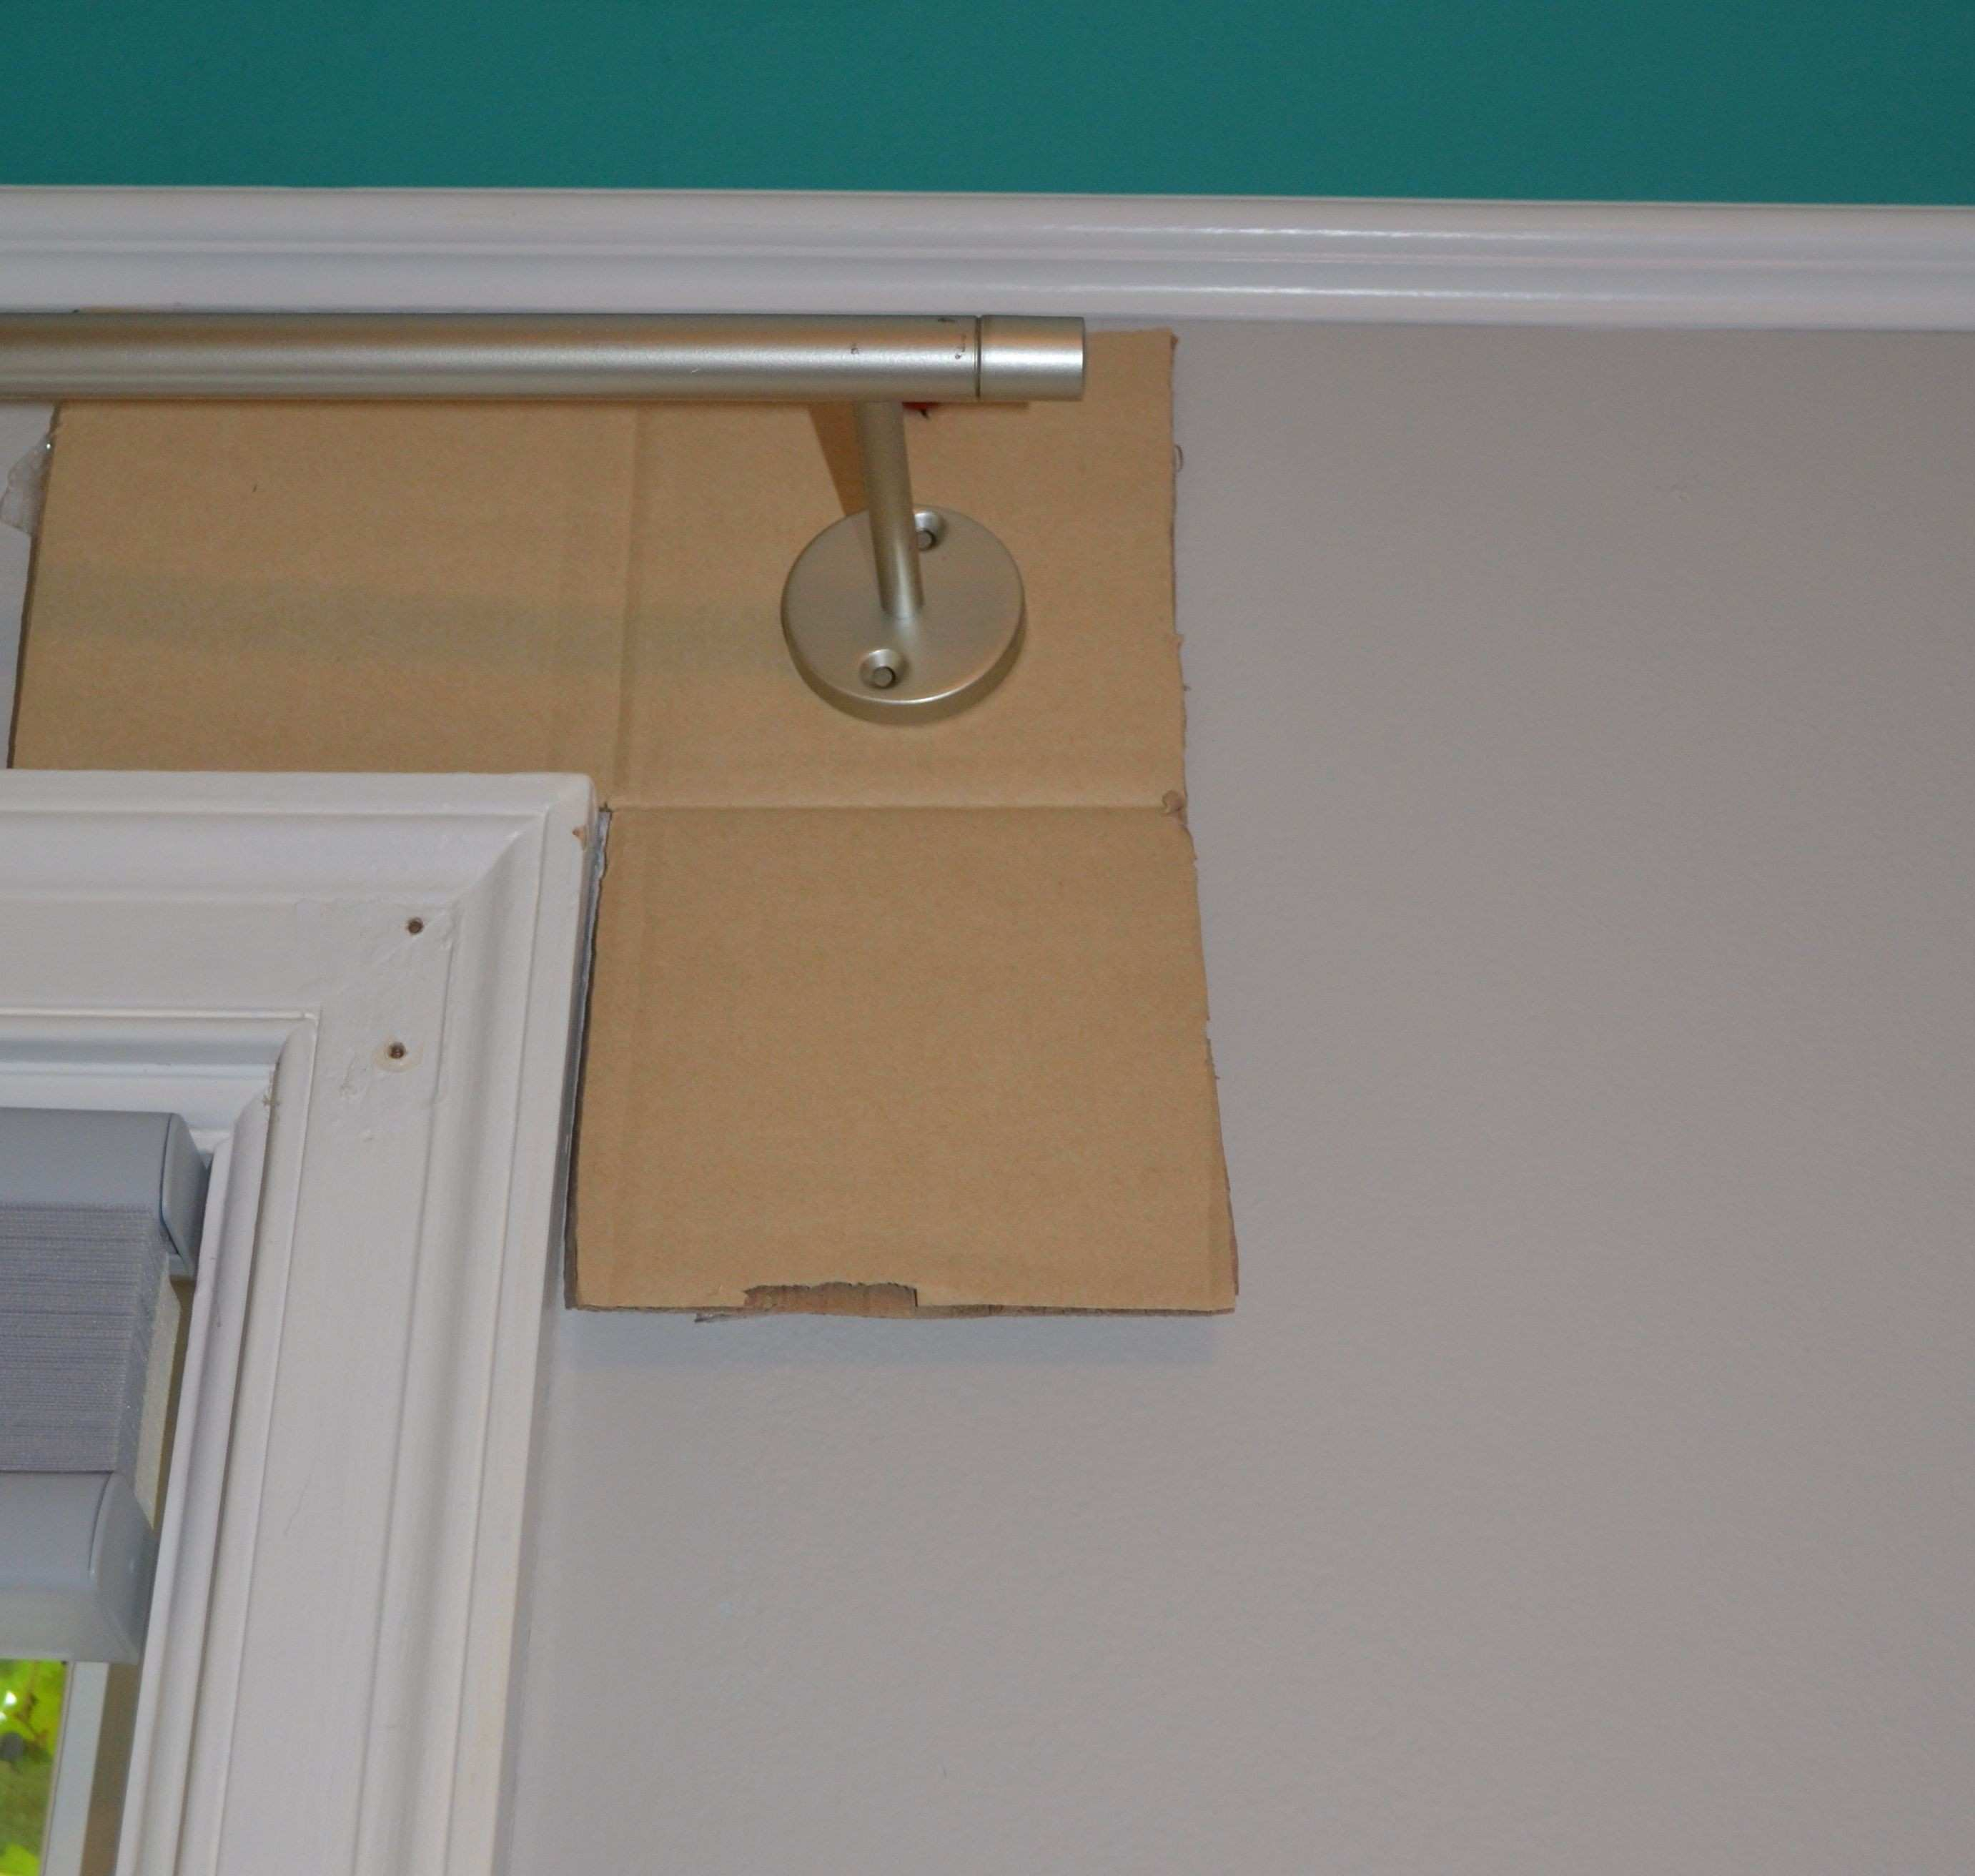 Template for hanging curtain rods …